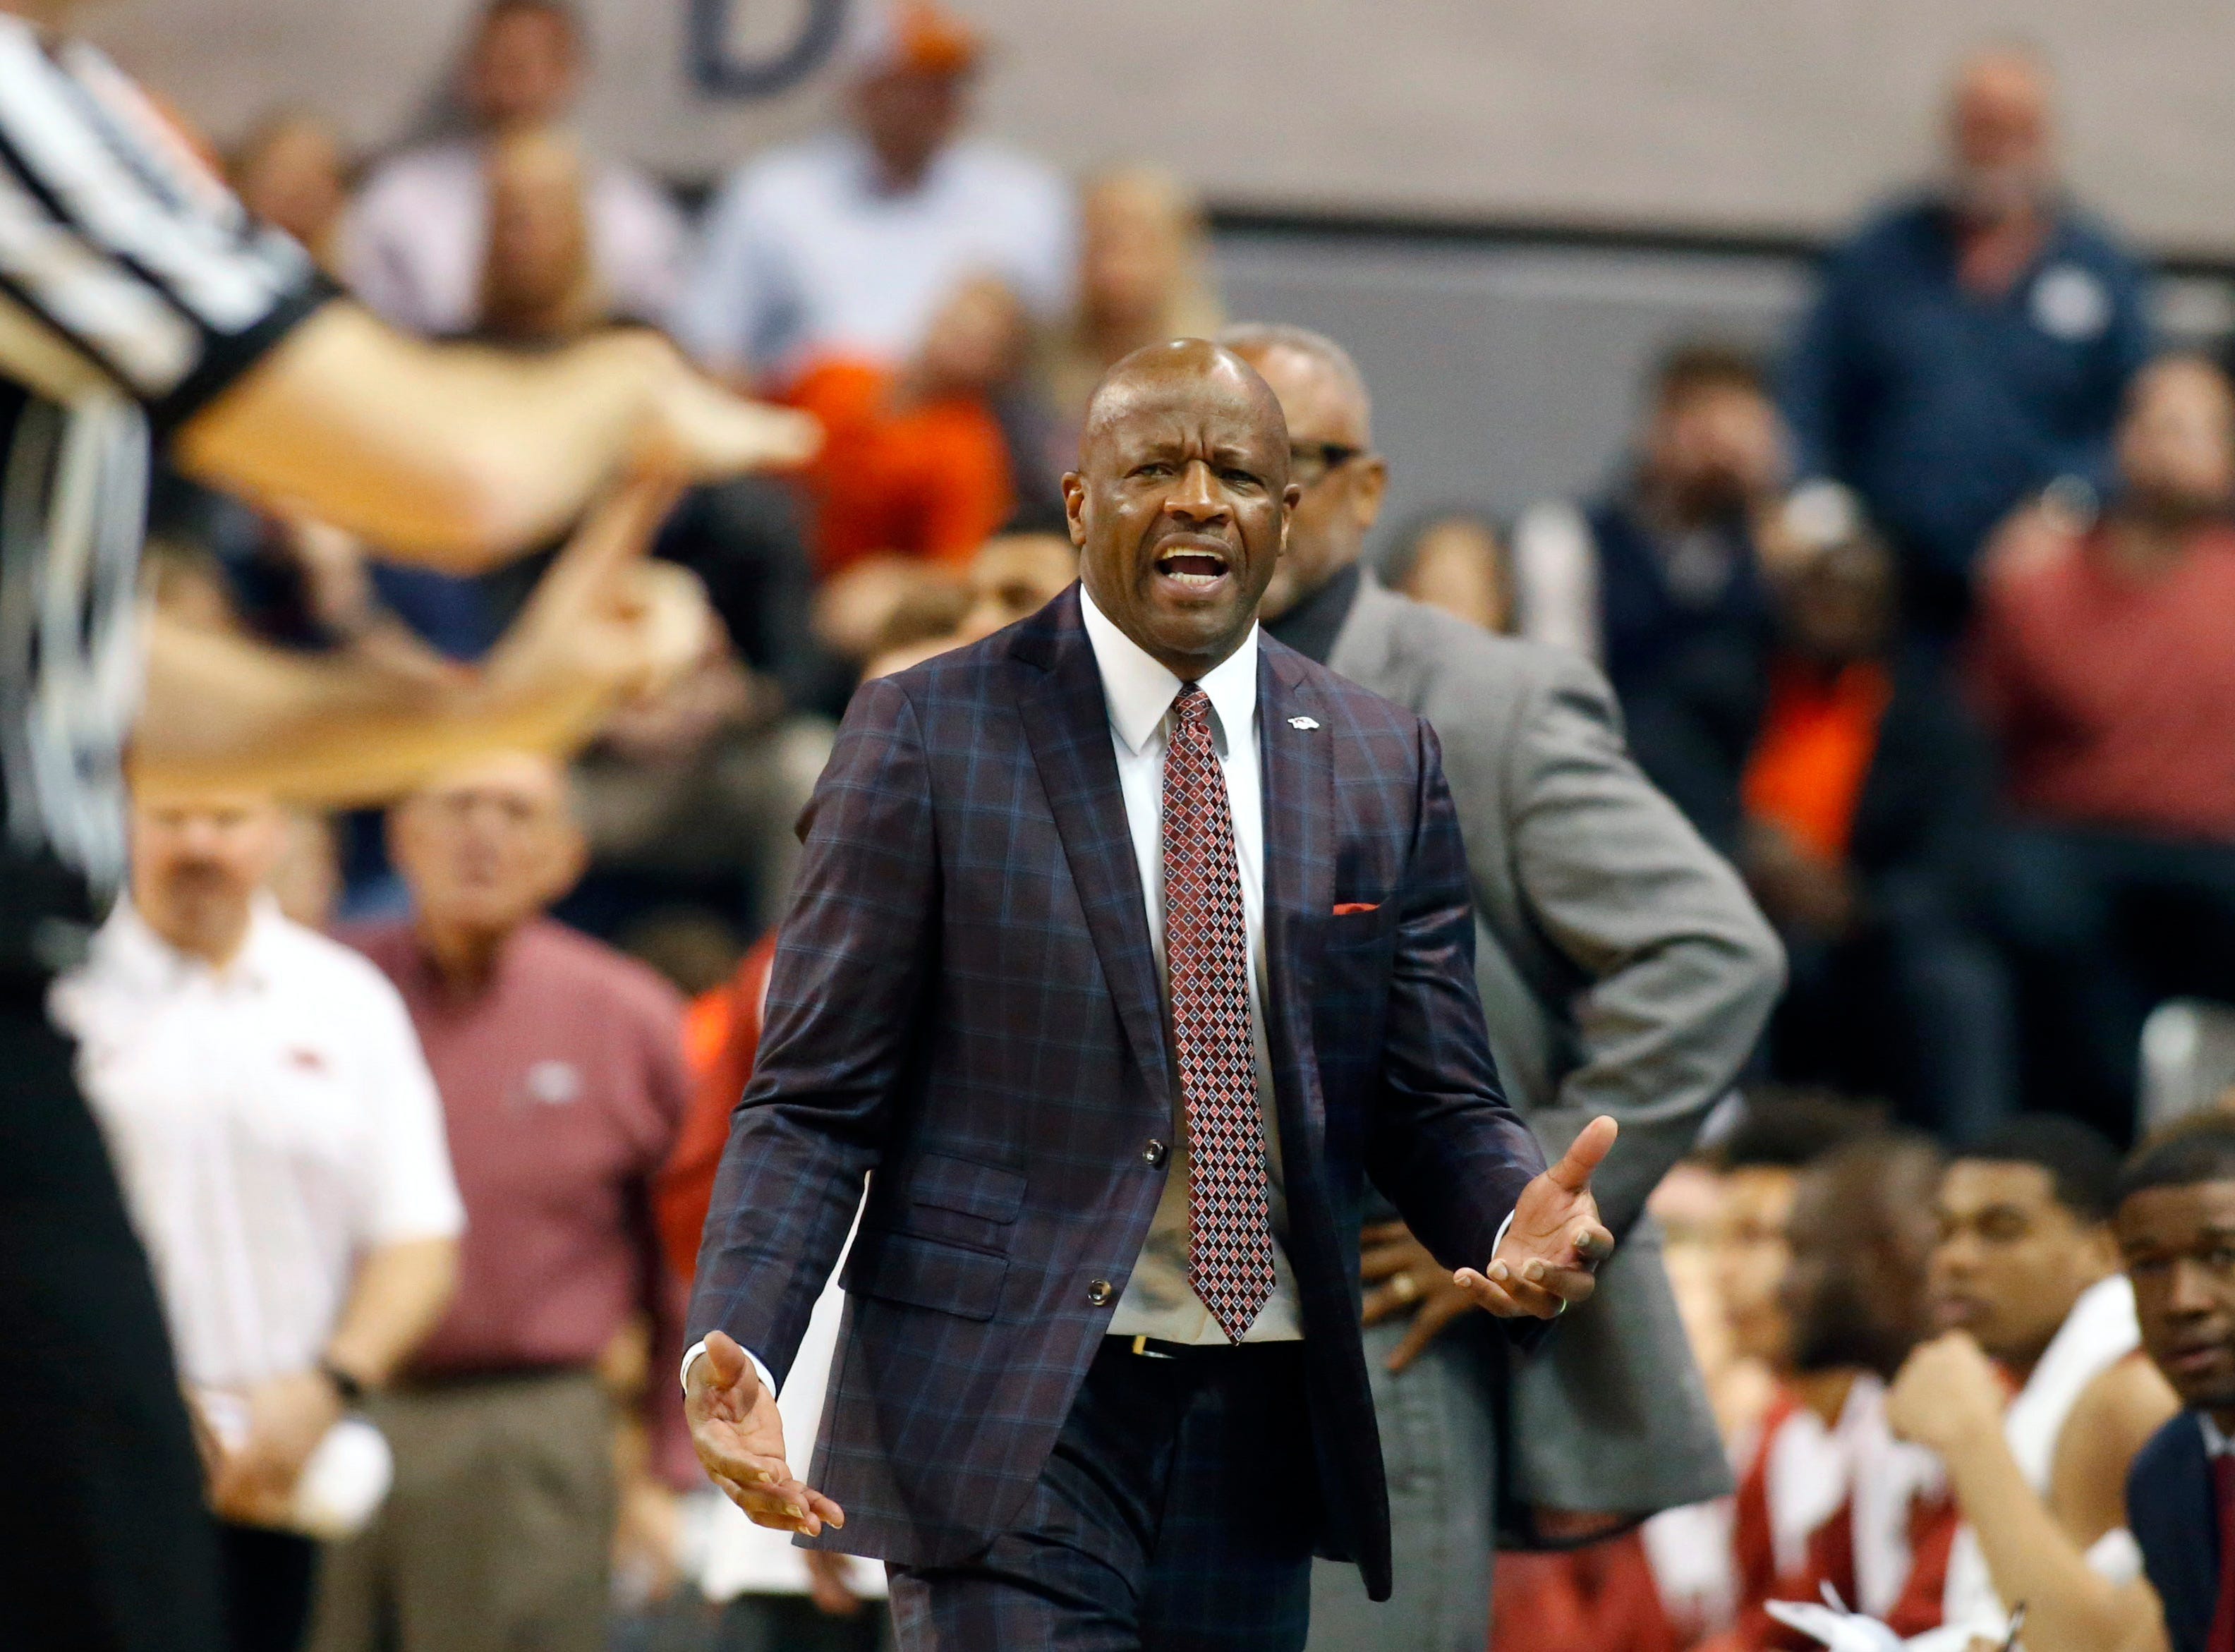 Feb 20, 2019; Auburn, AL, USA; Arkansas Razorbacks head coach Mike Anderson reacts as an official calls a technical foul on the Razorbacks during the first half against the Auburn Tigers at Auburn Arena. Mandatory Credit: John Reed-USA TODAY Sports